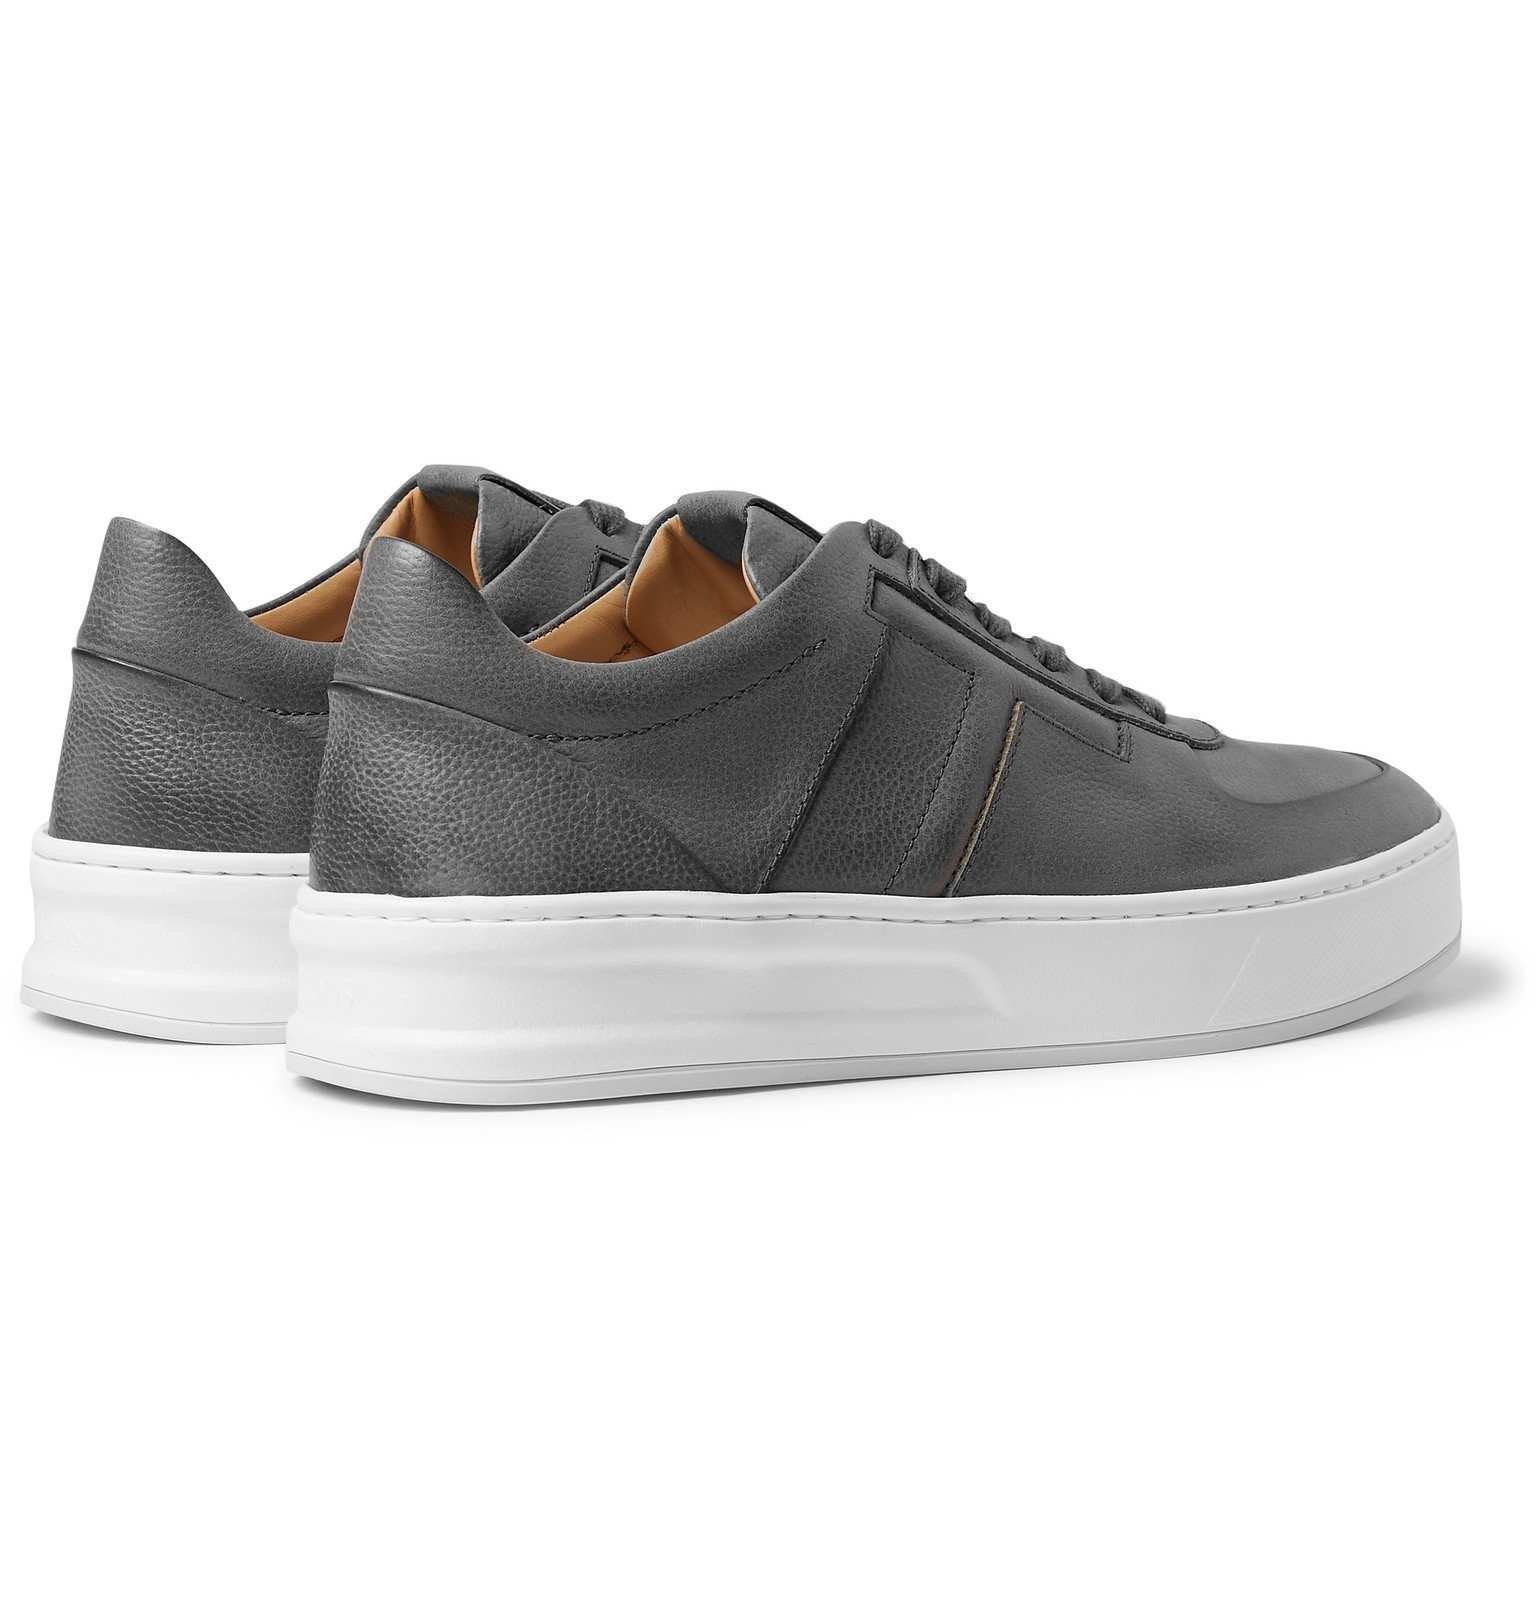 Tod's - Full-Grain Leather Sneakers - Gray